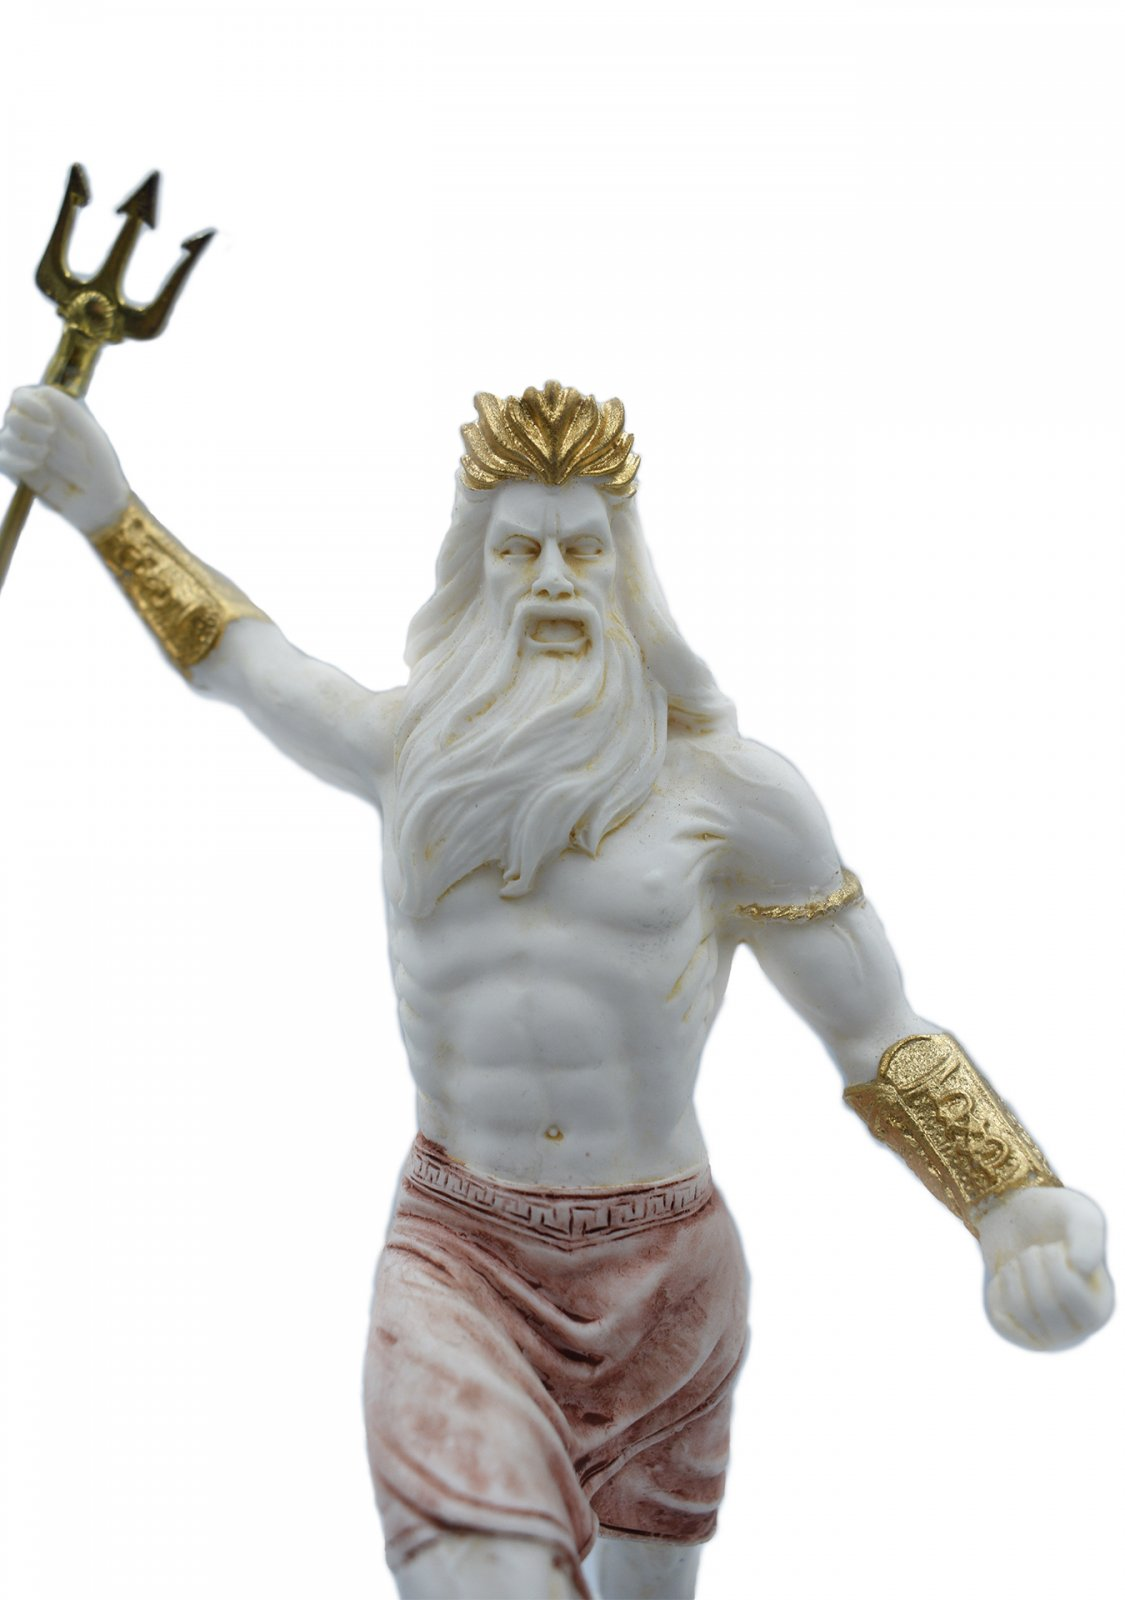 Greek alabaster statue of Poseidon with his trident